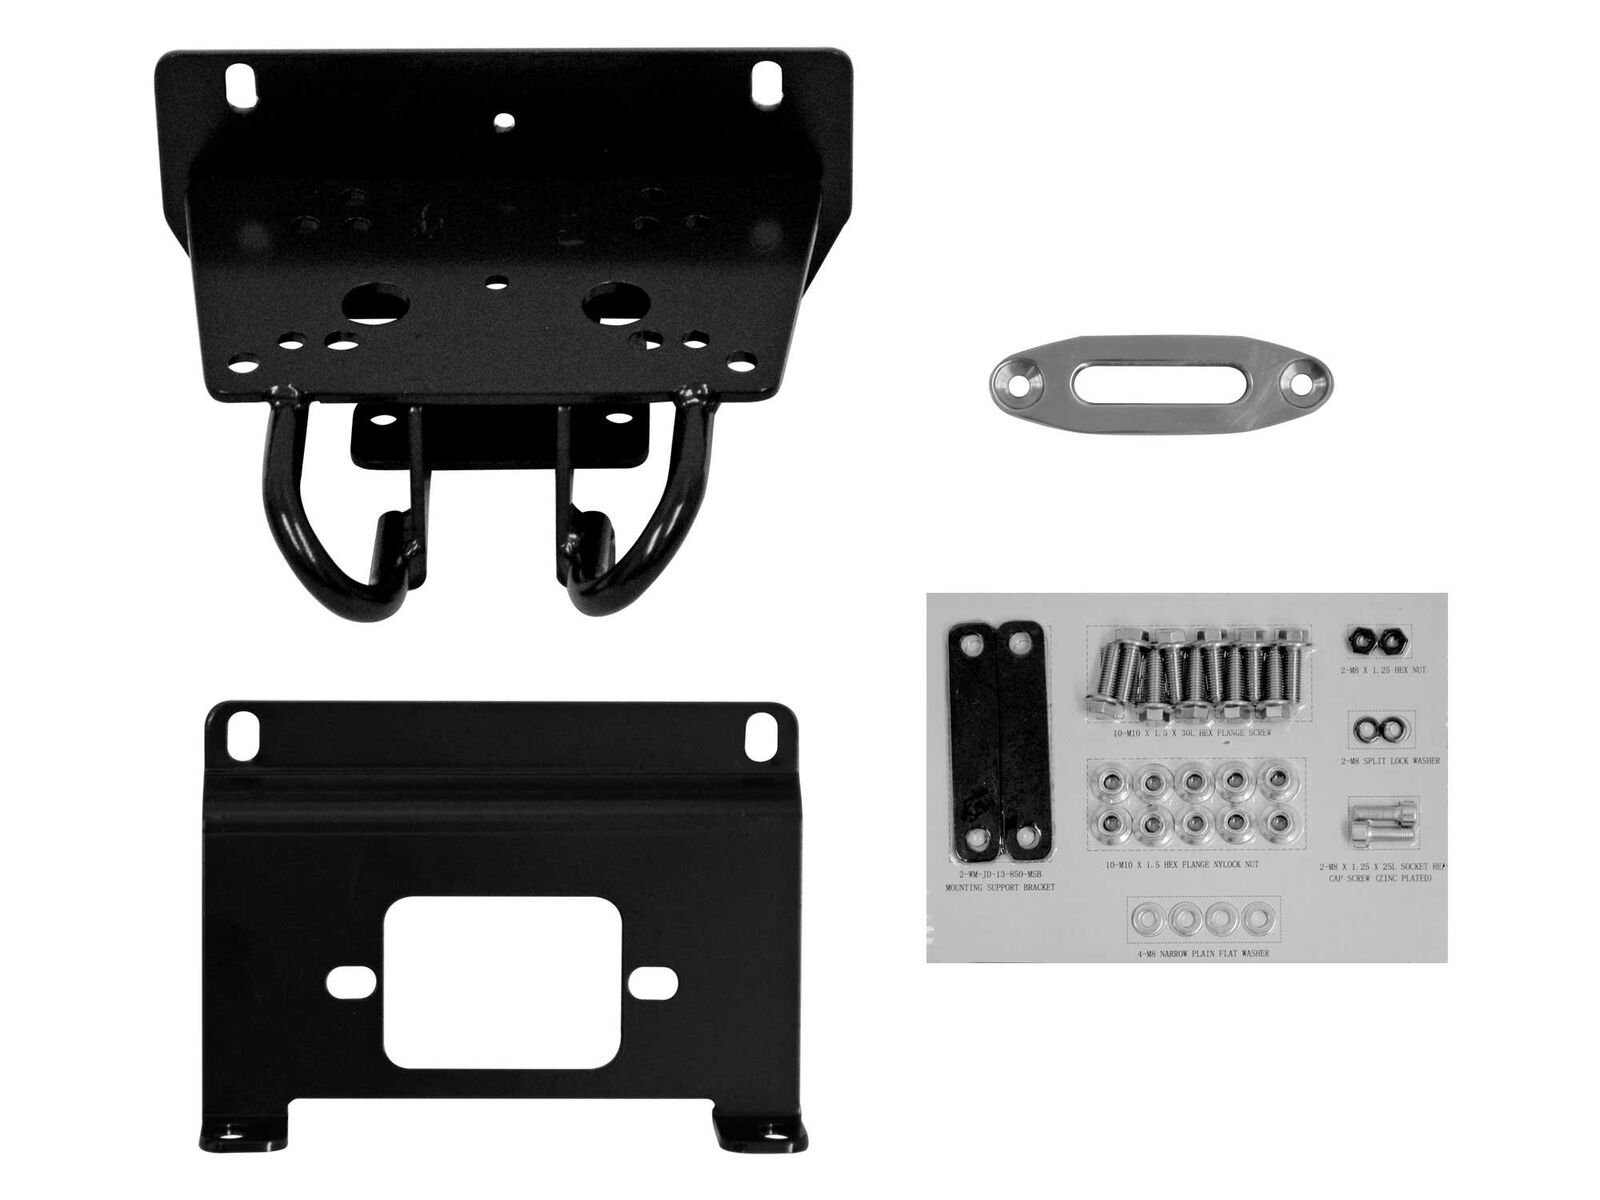 SuperATV John Deere Gator RSX 850 Heavy Duty Winch Mounting Plate For 3500 Lb. Winches (Without Factory Bumper)